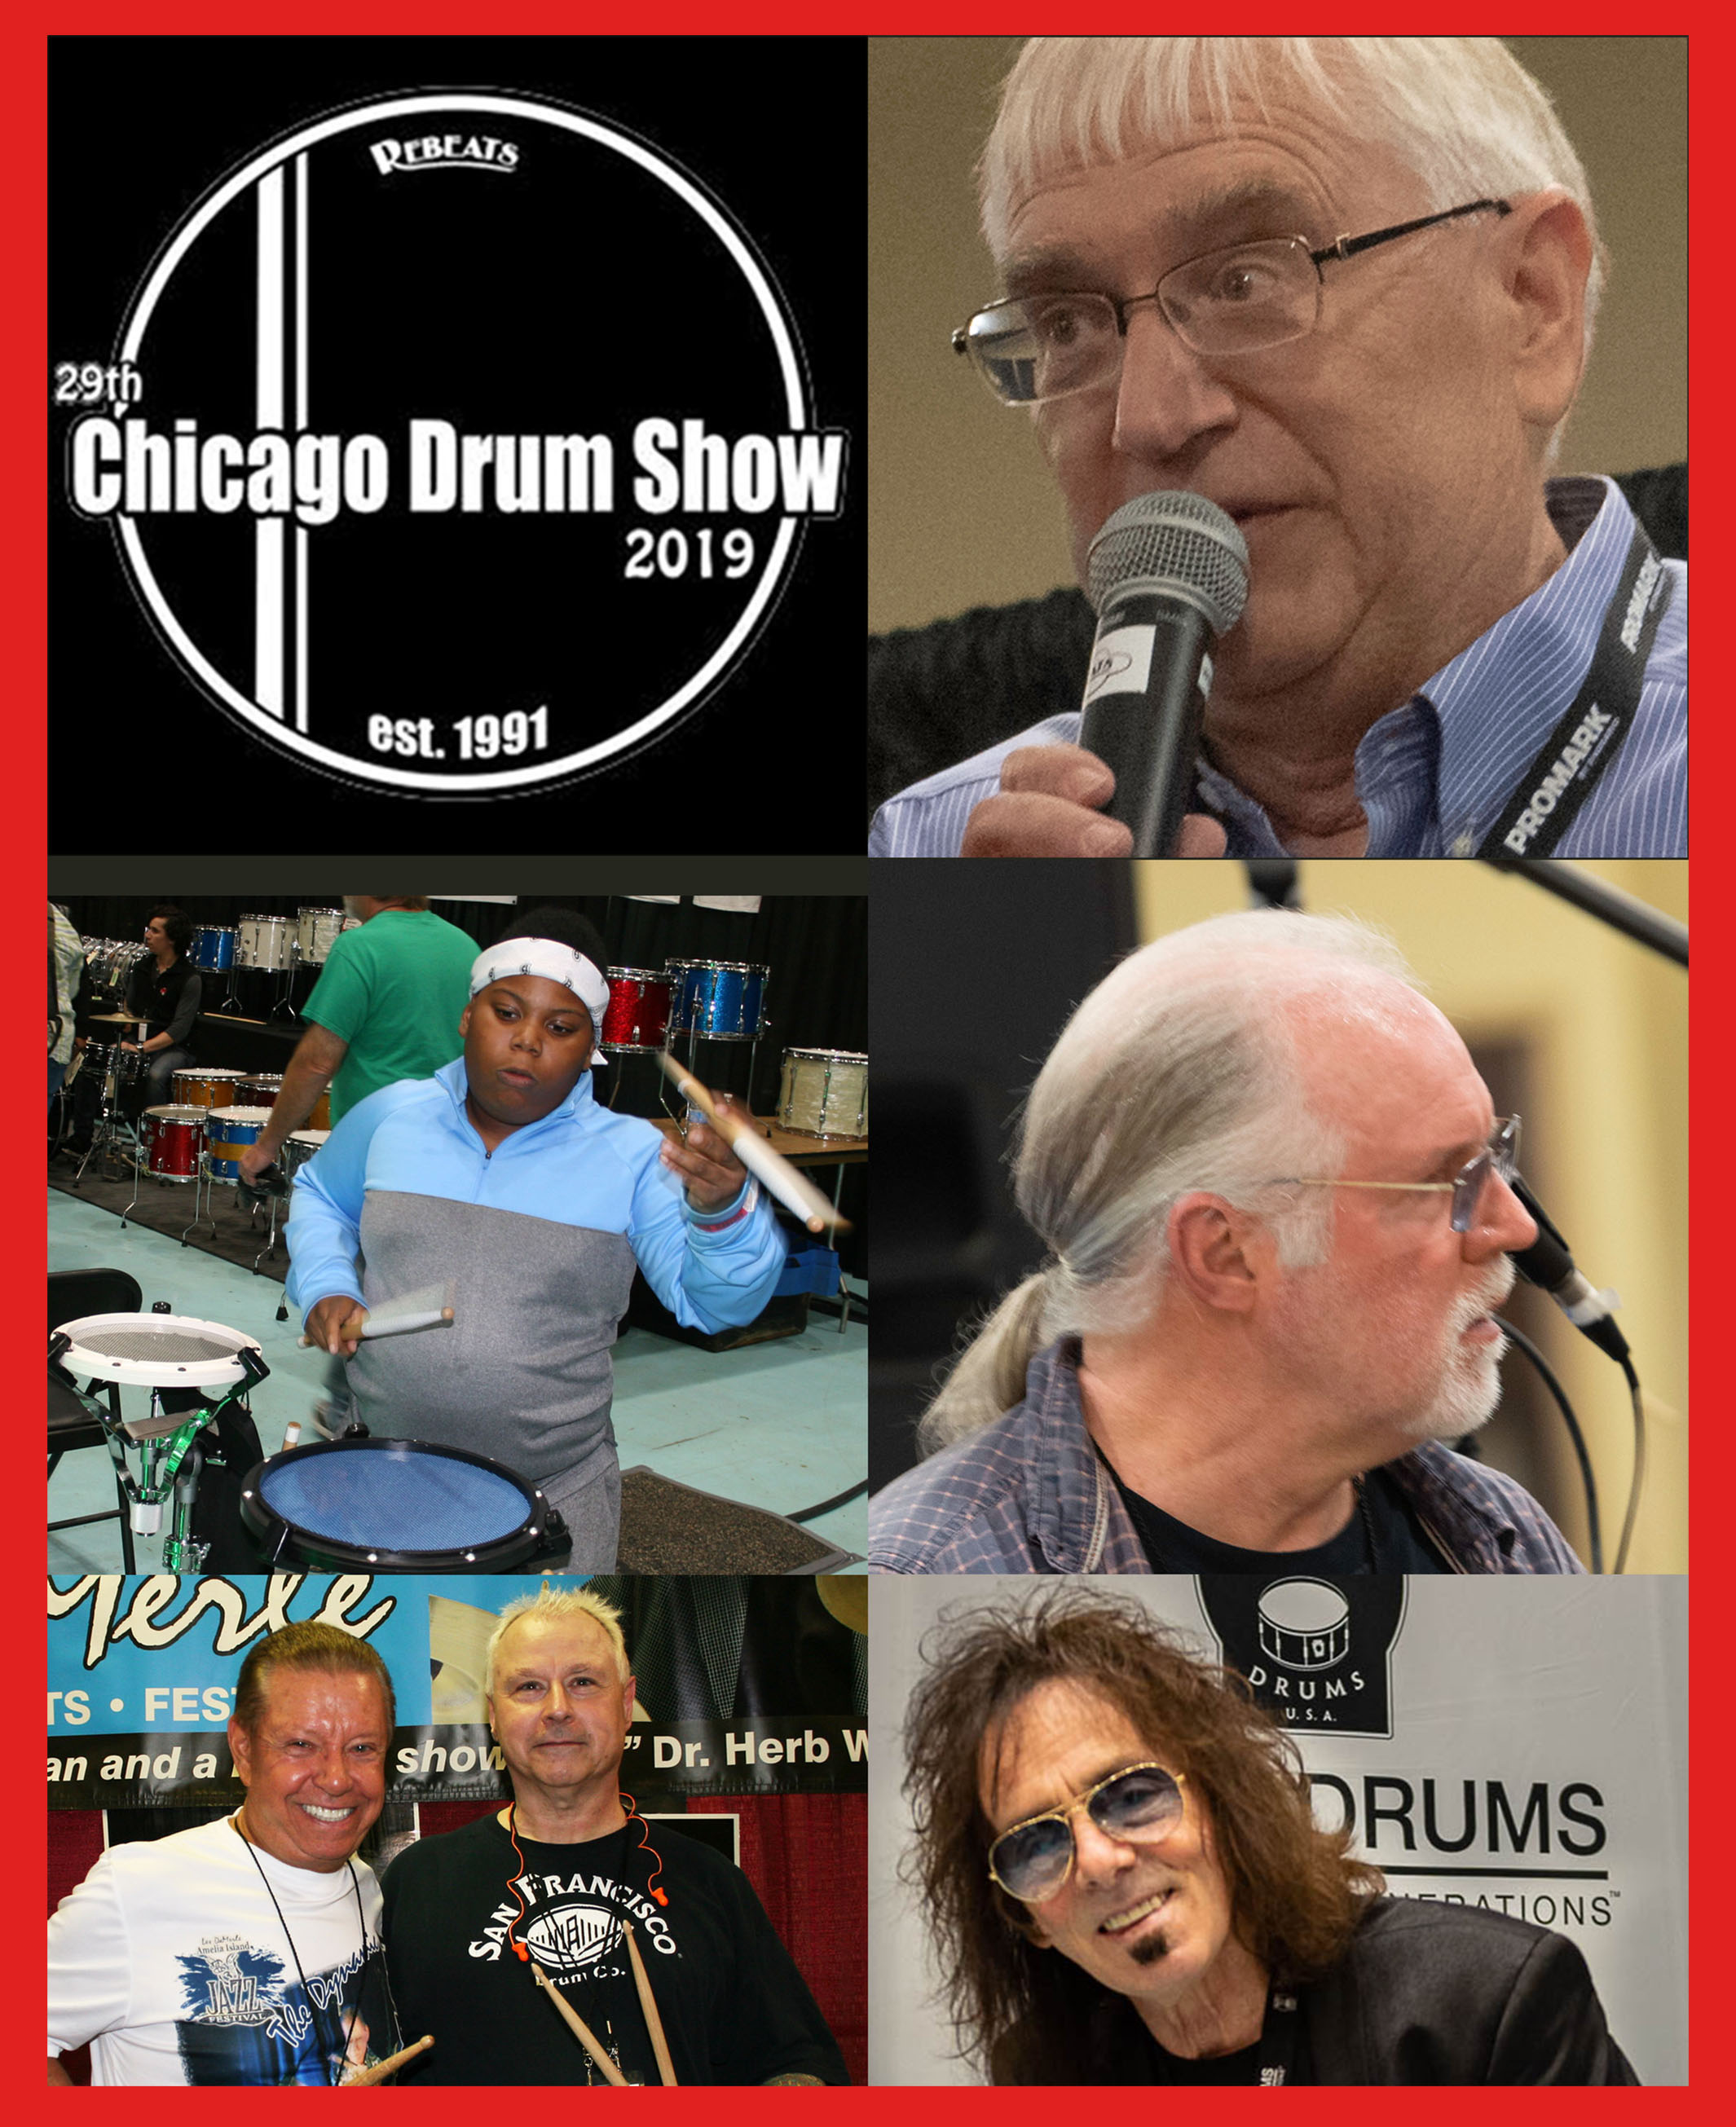 Now celebrating its 29th year, the Chicago Drum Show is the world's largest and longest running drumming event in the world. It features over 30,000 square feet of new and used custom drums and cymbals of all makes and models.